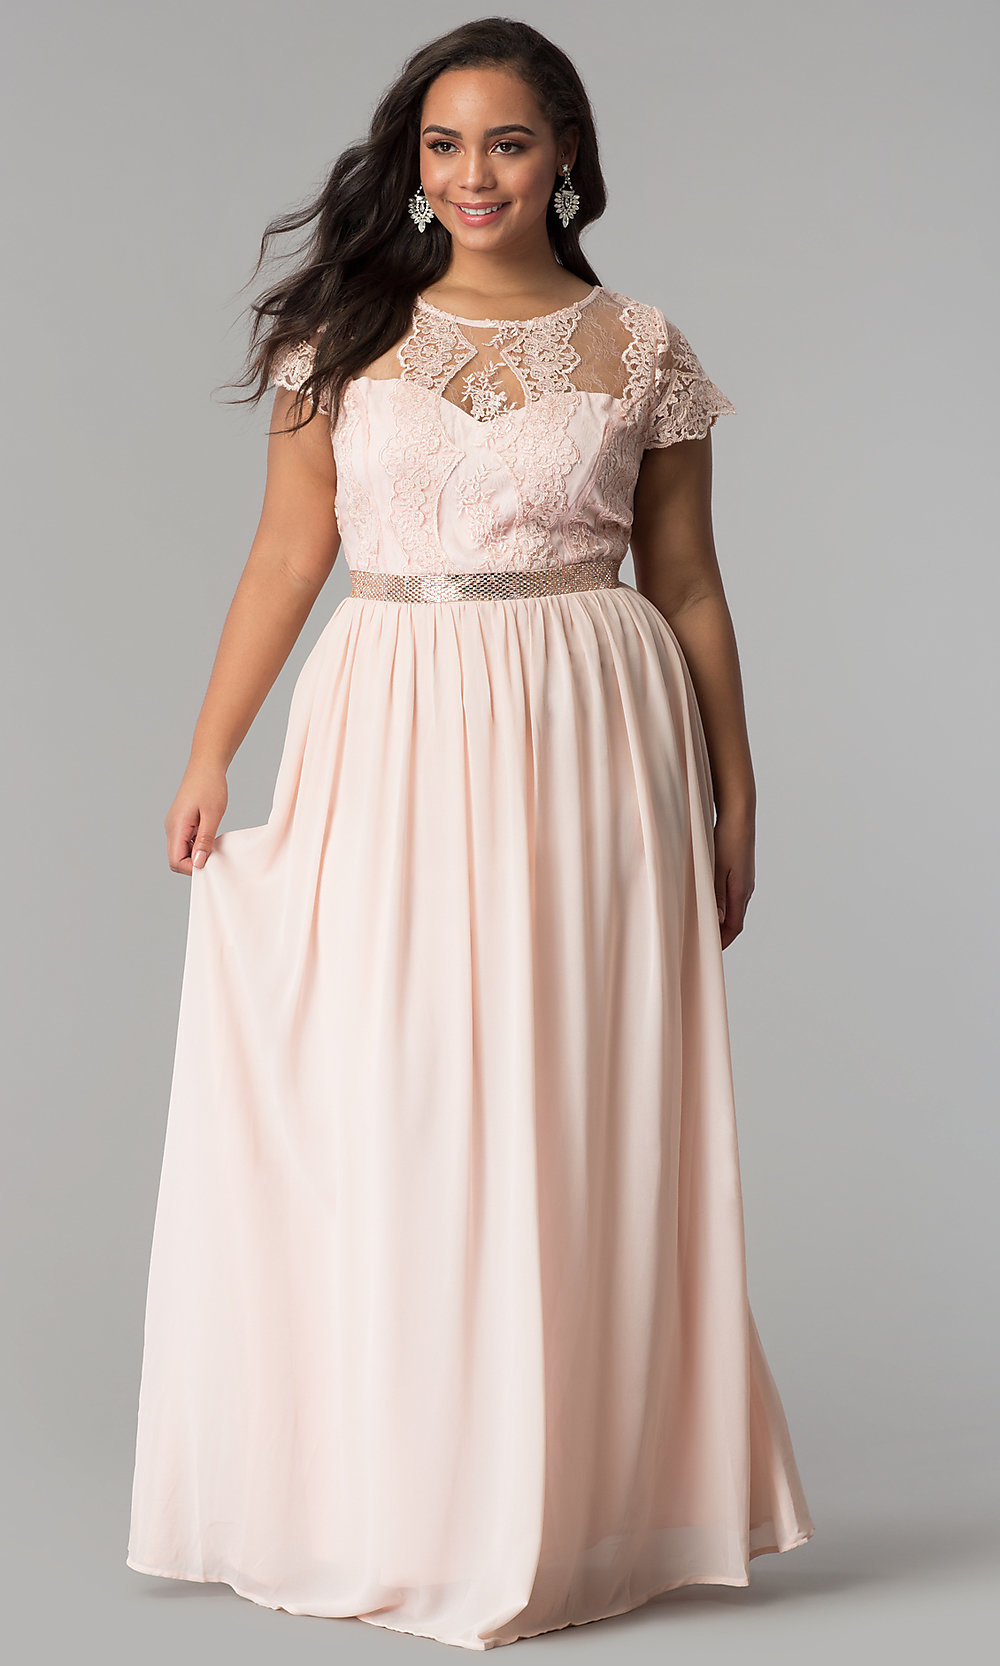 Plus-Size Long Prom Dress with Sleeved Lace Bodice